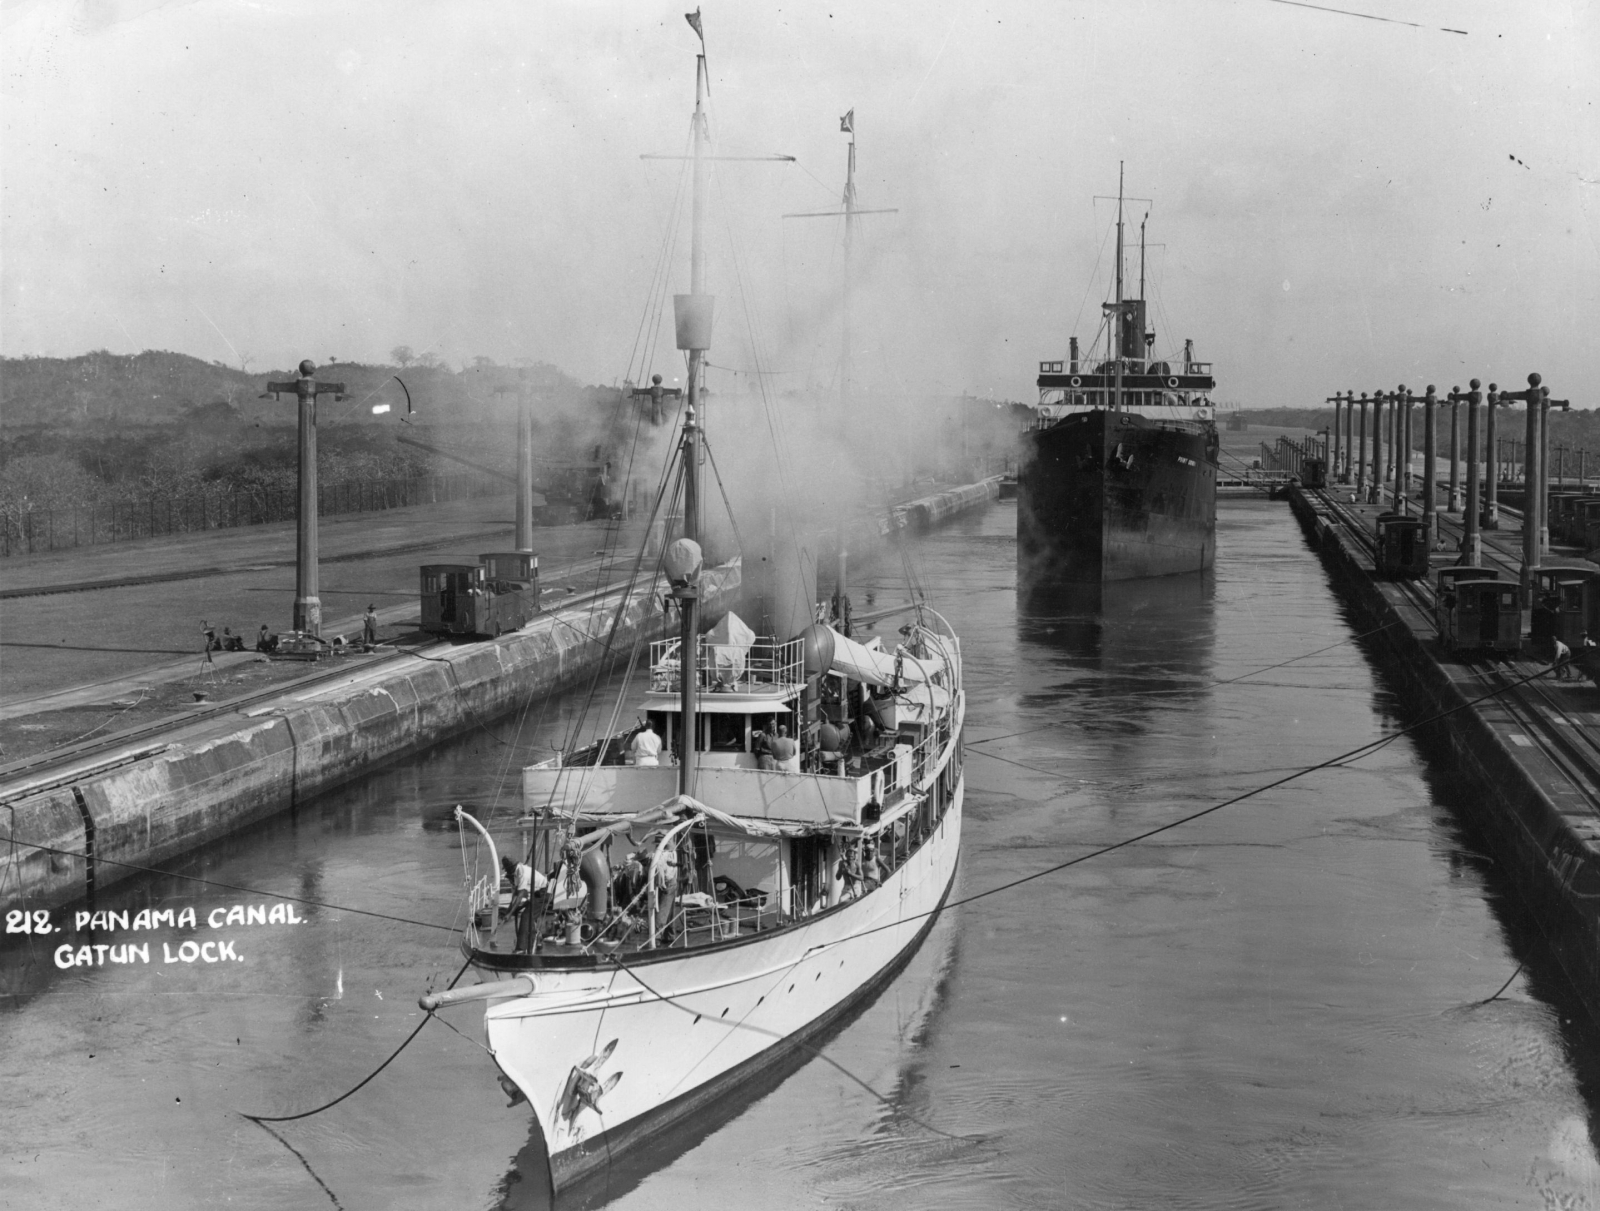 Canal De Panama: Panama Canal 100th Anniversary: History And Facts About